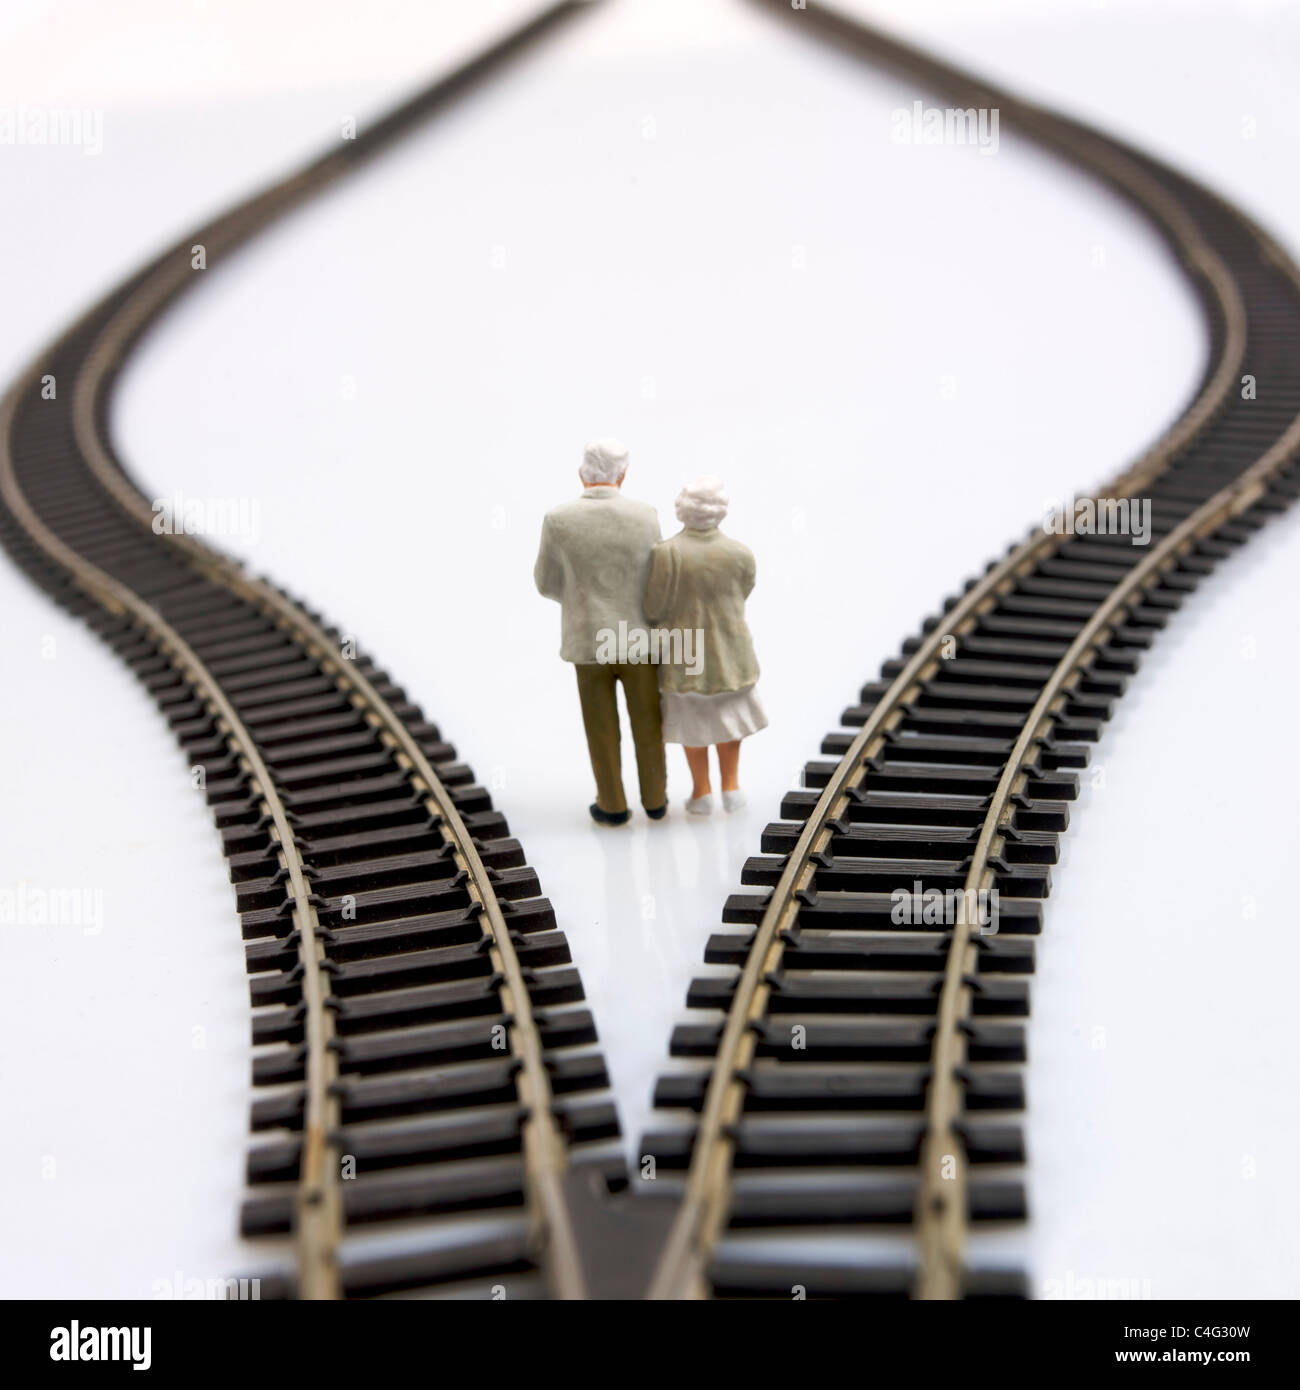 Old couple choosing which direction to take / life choices / choice, future decisions concept - Stock Image